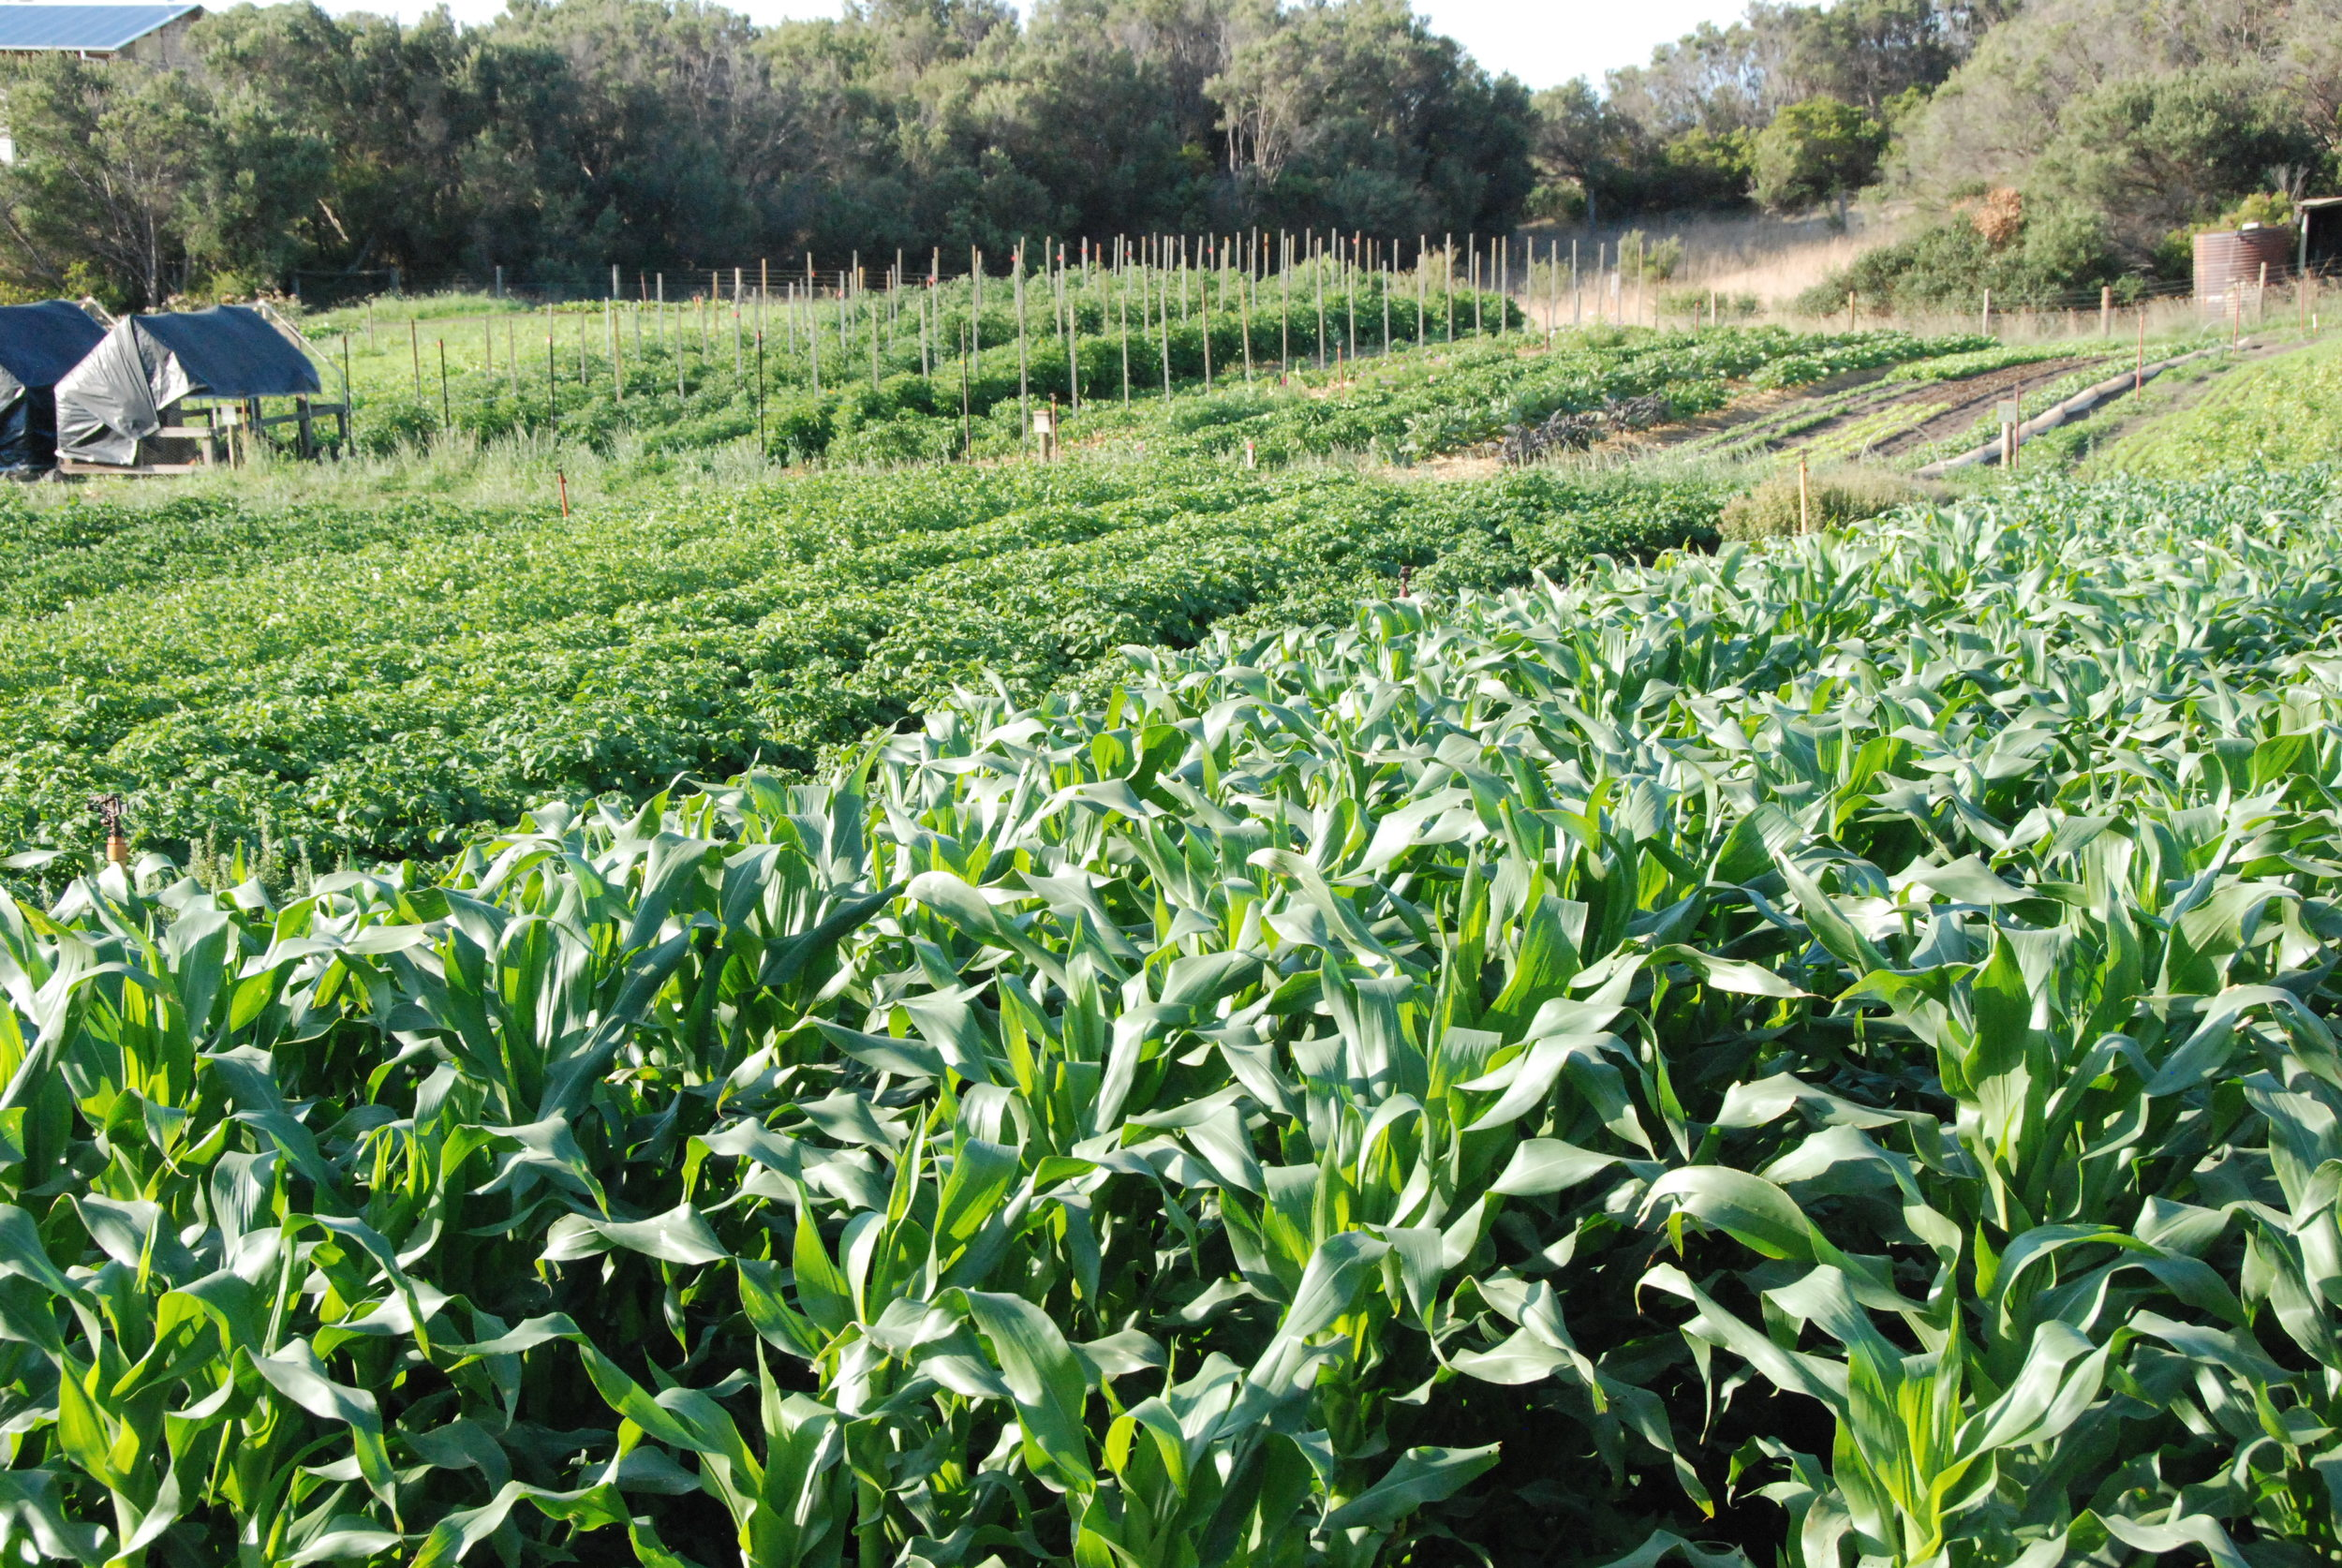 Sweet Corn, Potatoes and Tomatoes in the field. The chicken tractors are preparing the area for the Autumn brassicas